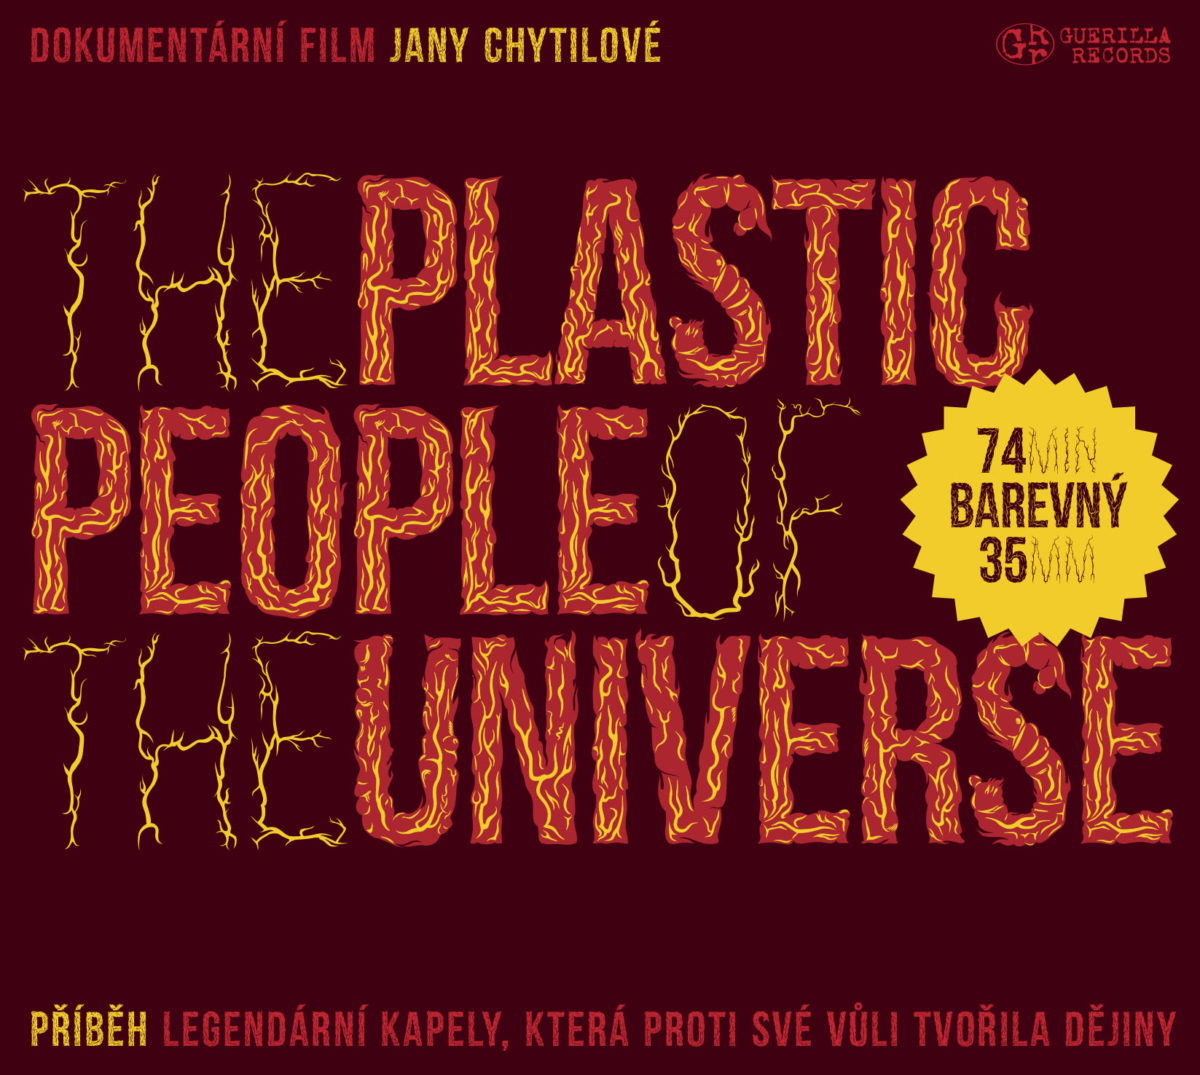 The Plastic People Of The Universe/dokumentární film Jany Chytilové